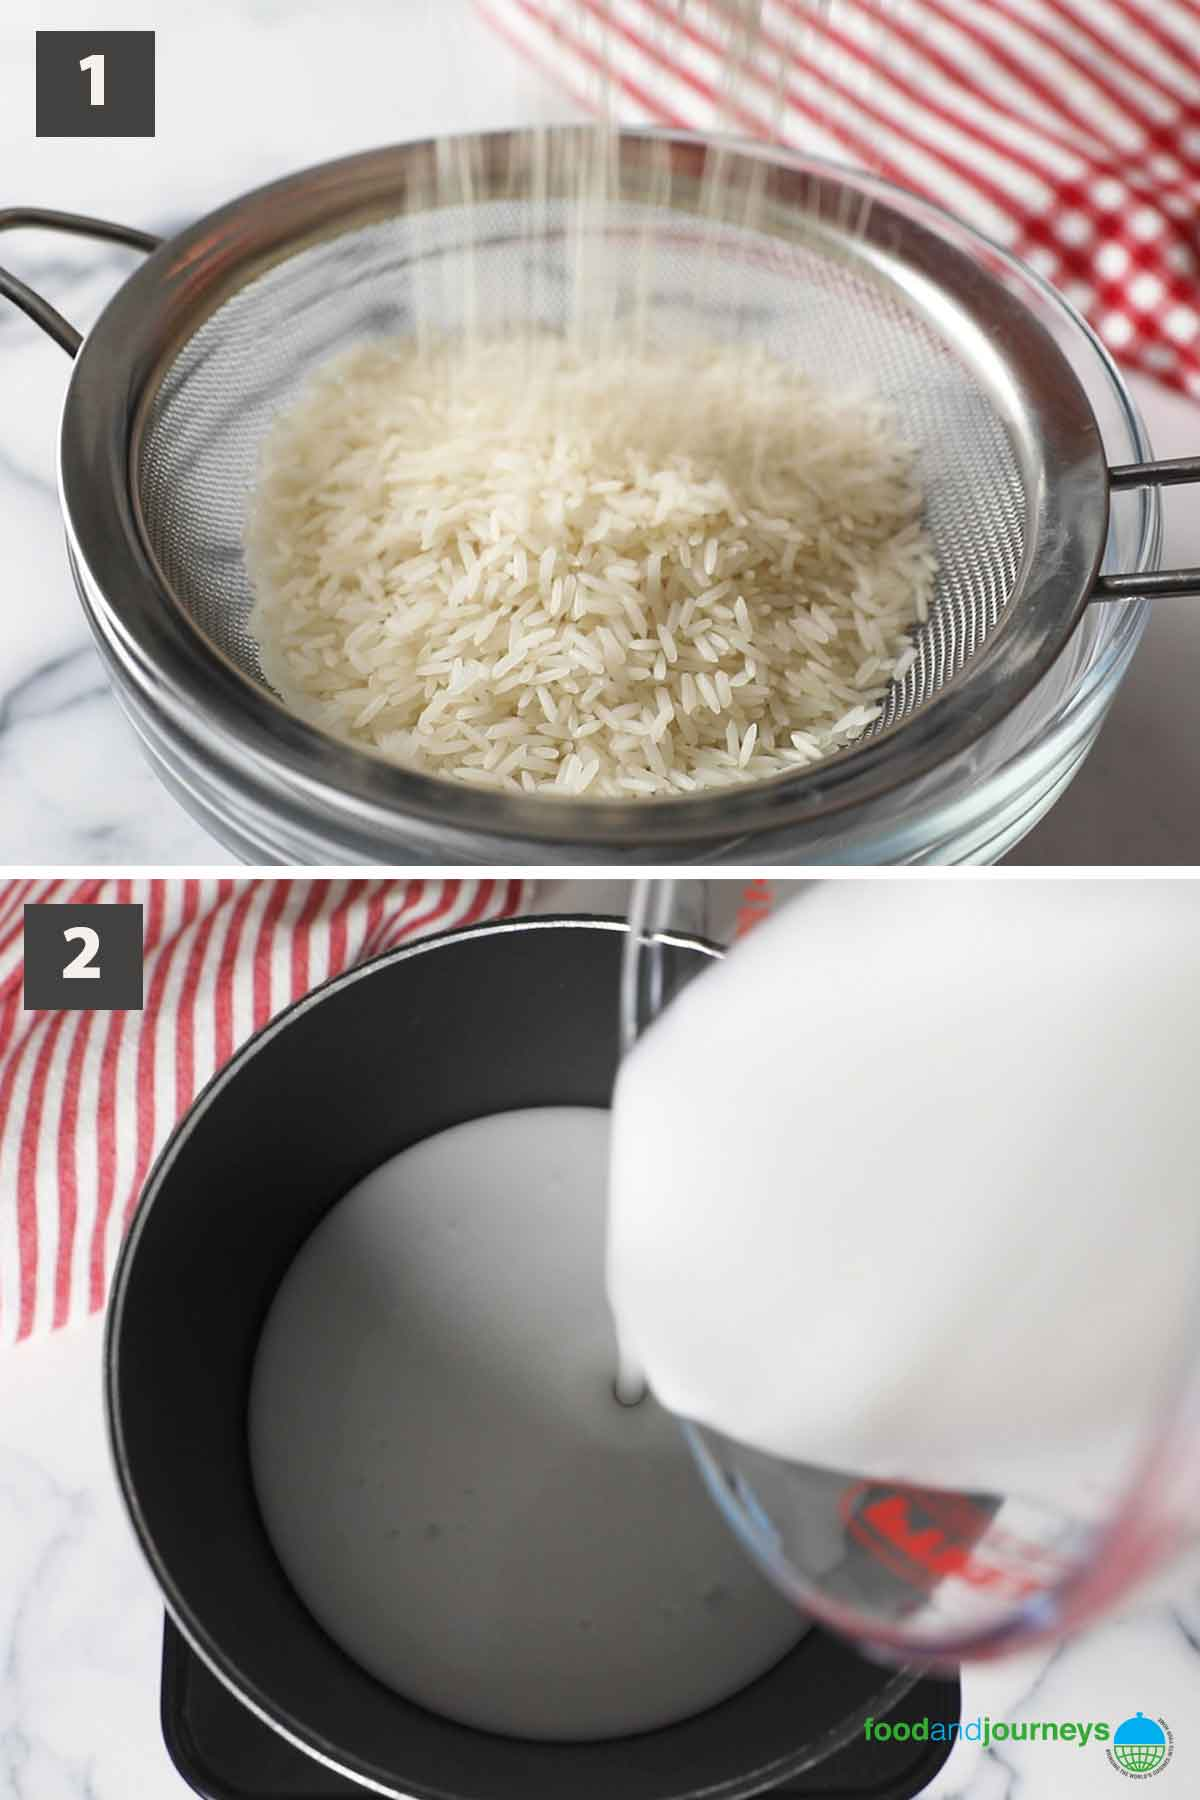 First part of a collage of images showing the step by step process on how to prepare Thai coconut rice.